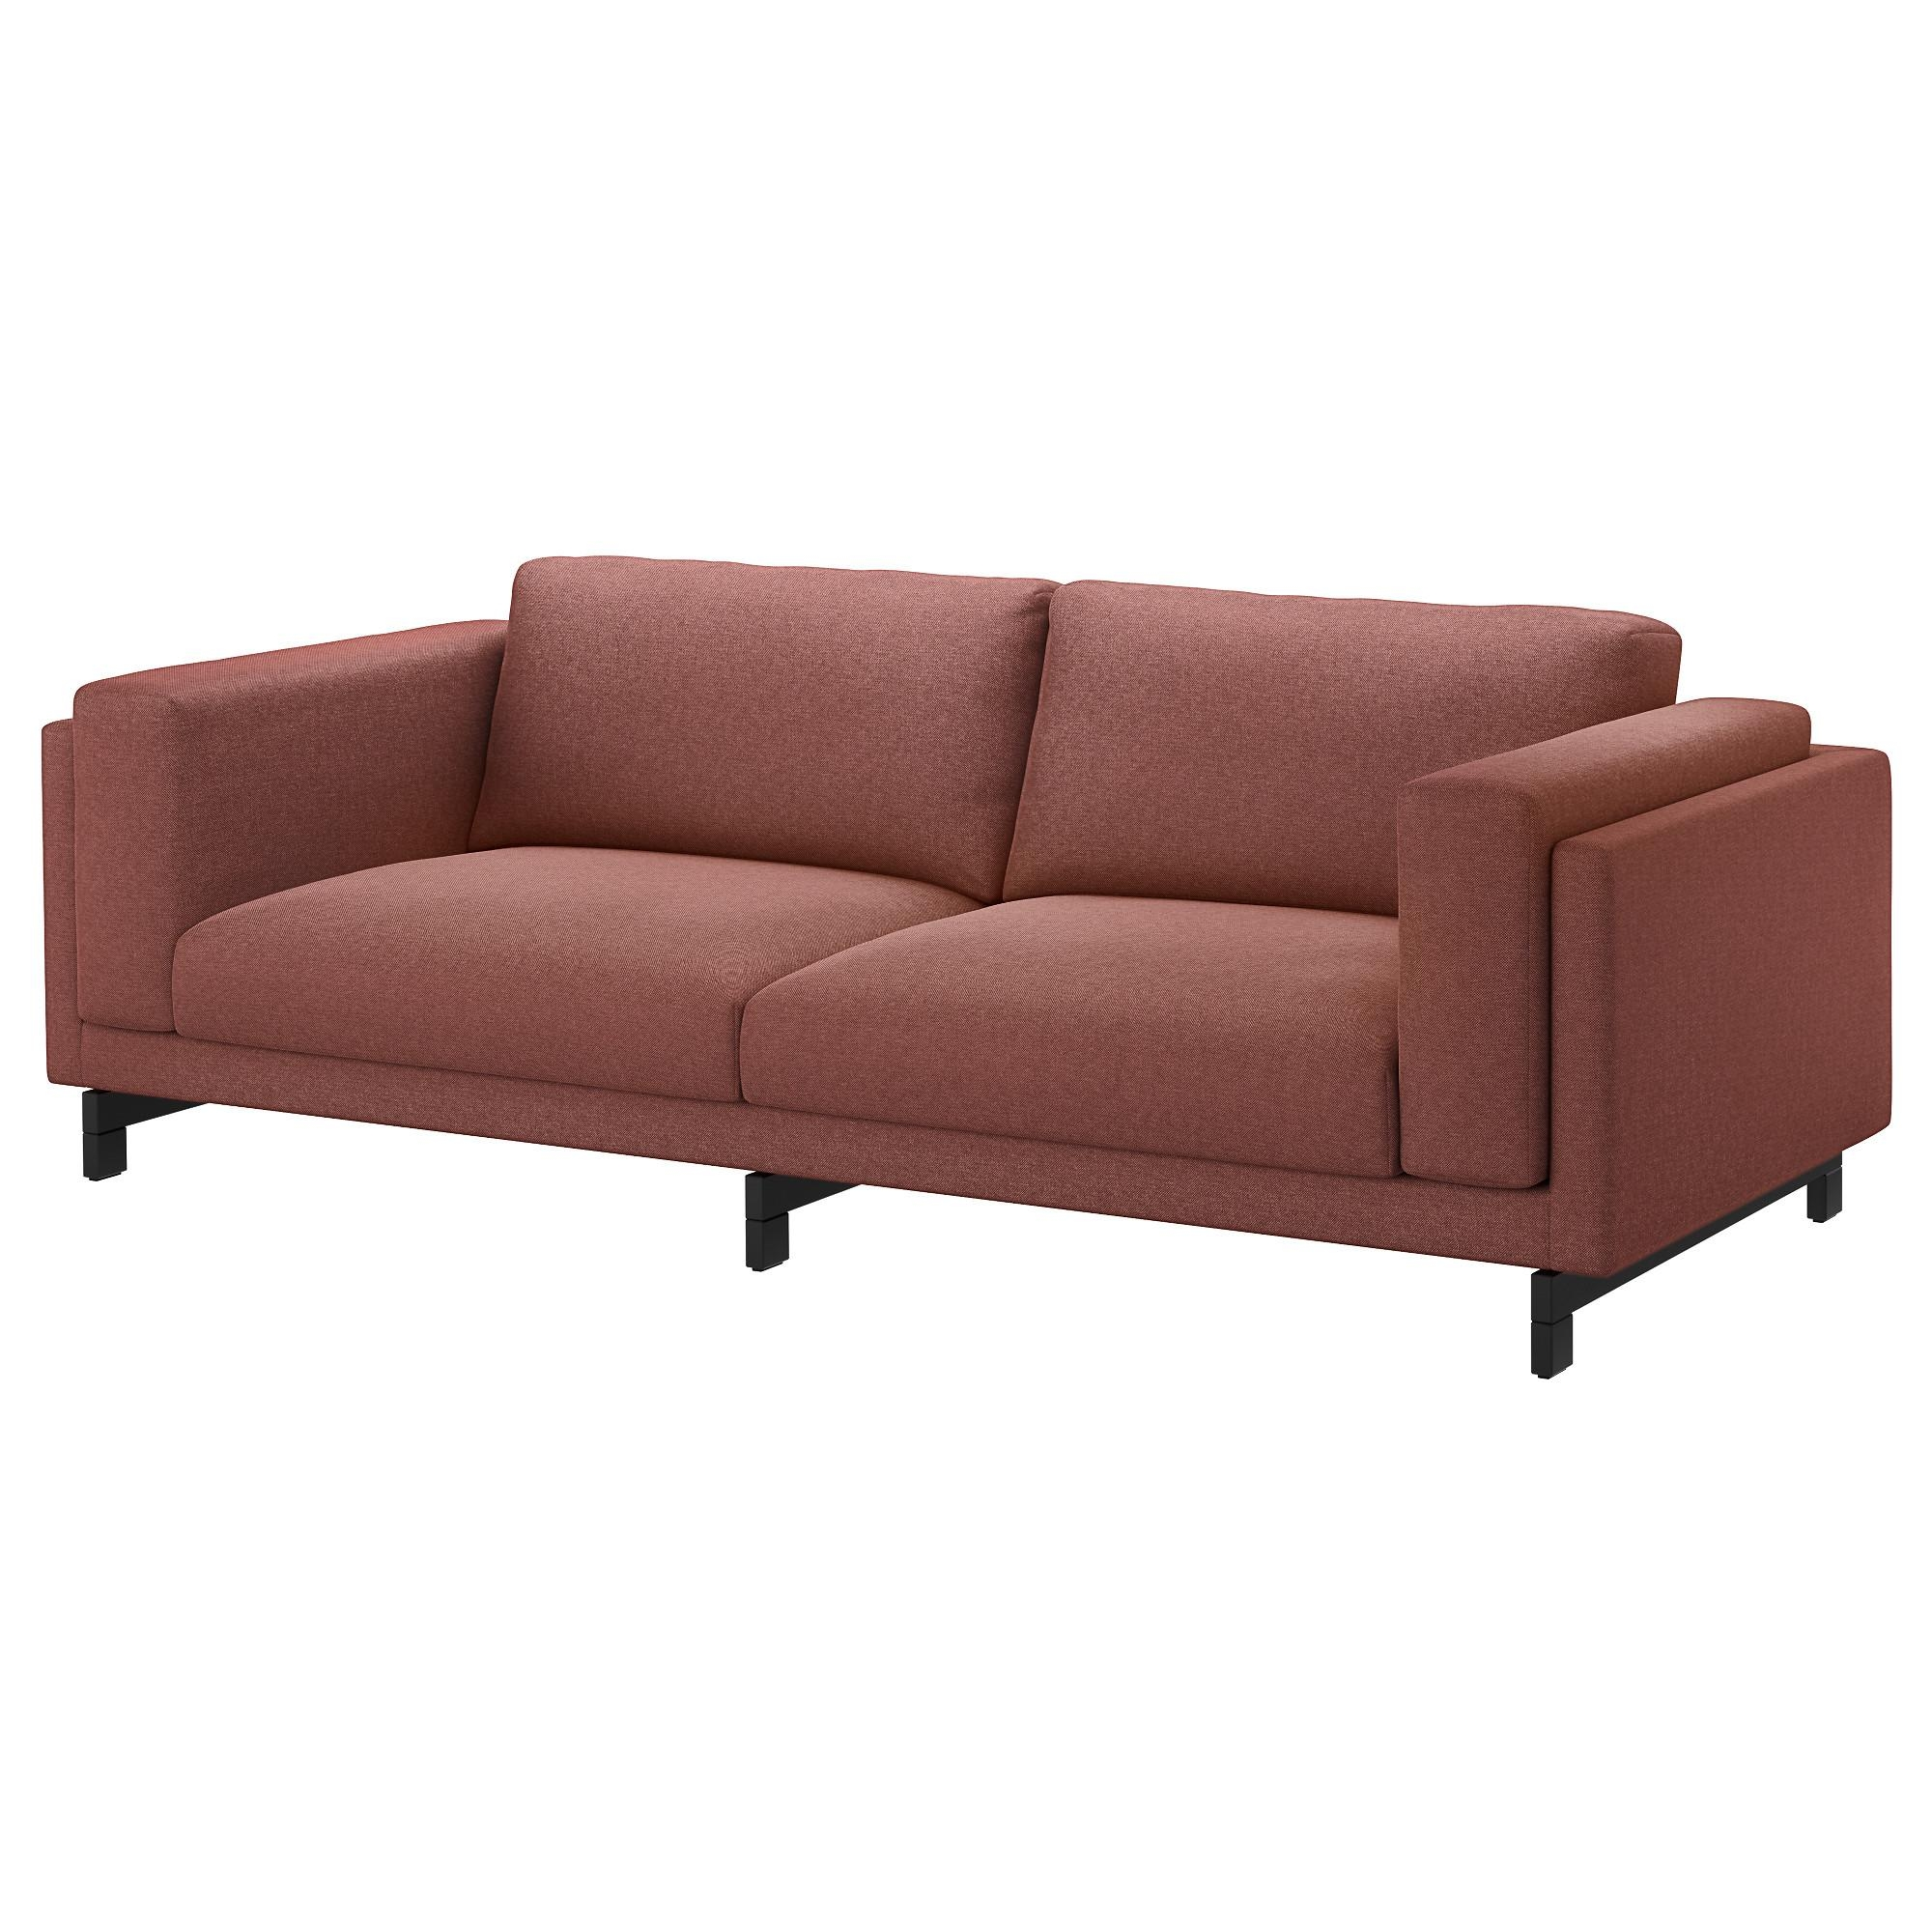 Ikea Sofa 3 20 Best Orange Ikea Sofas Sofa Ideas